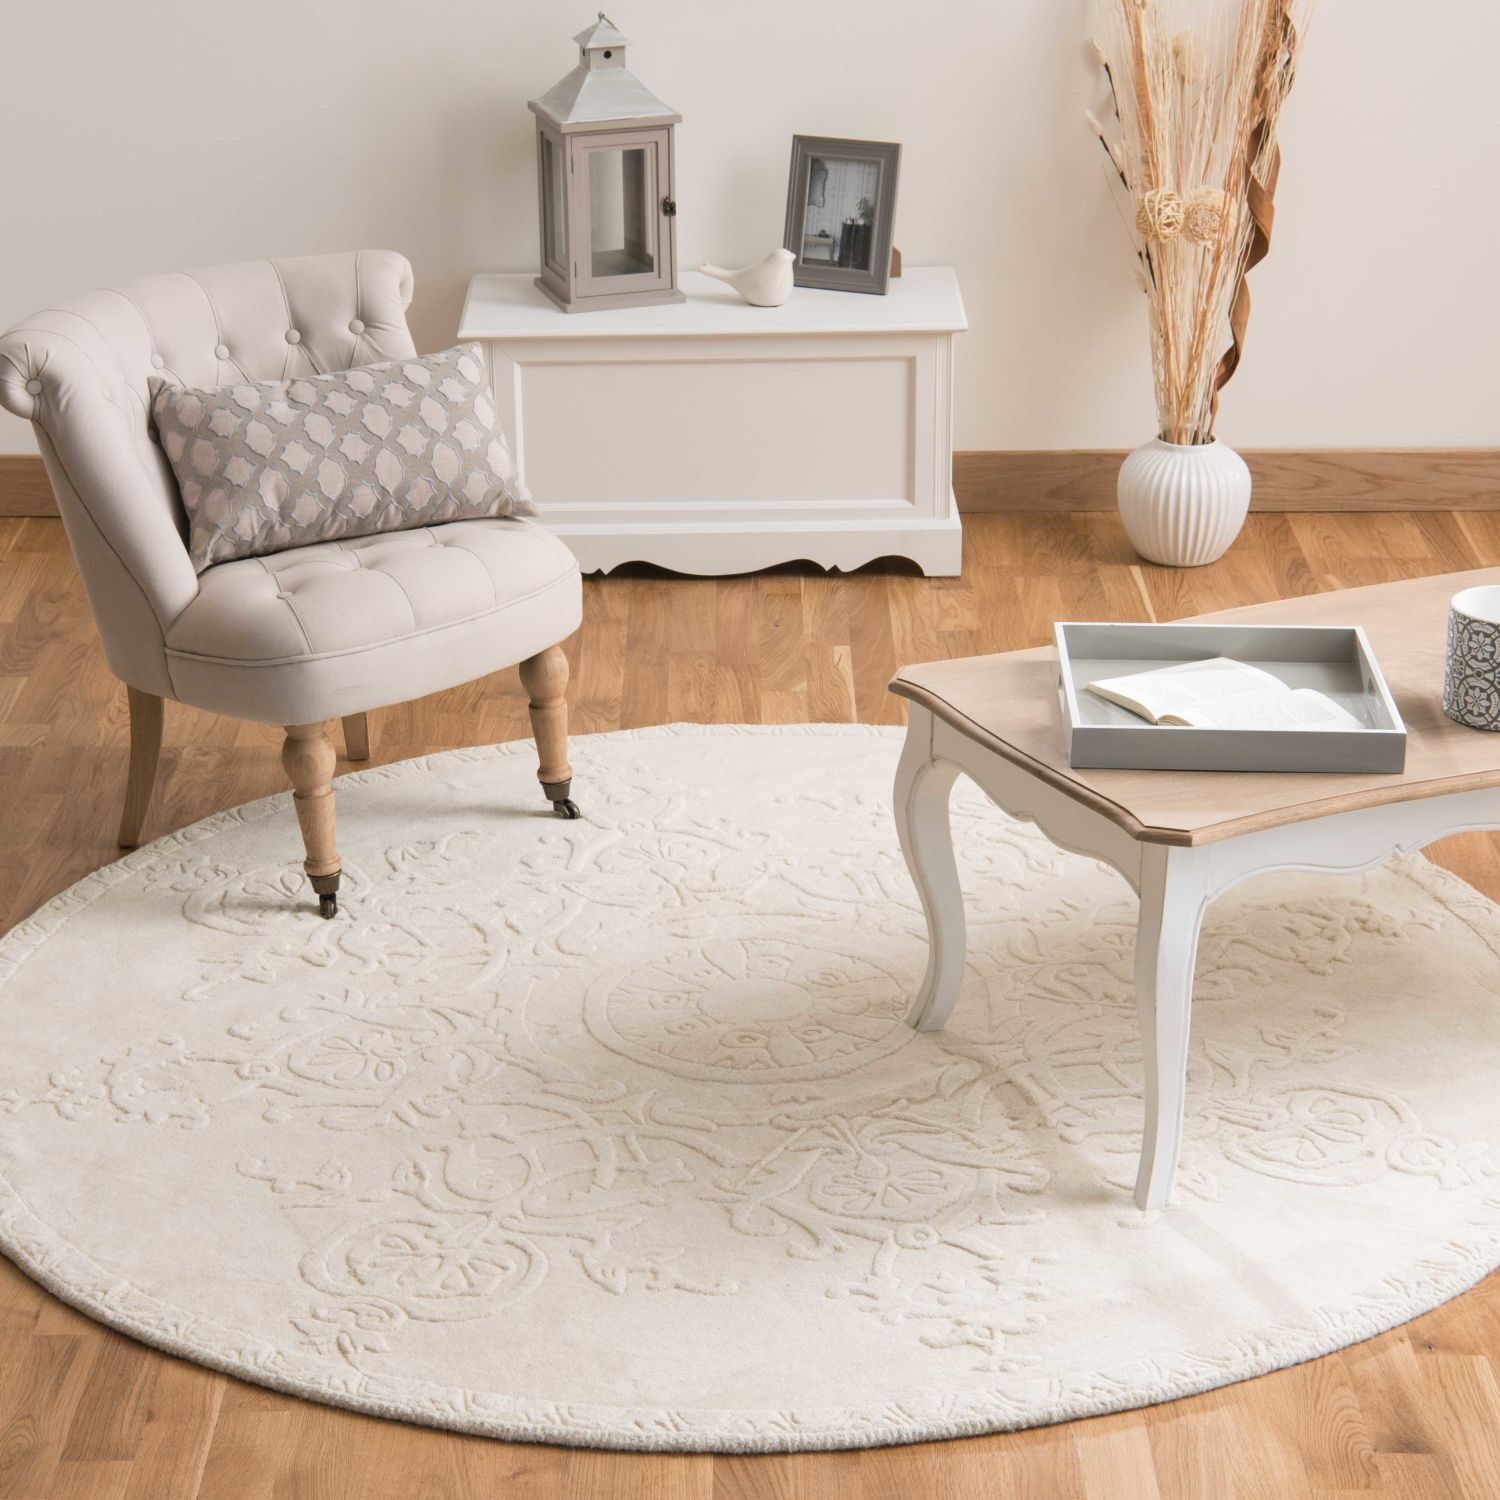 Home furnishings Round rugs, Furniture, Room